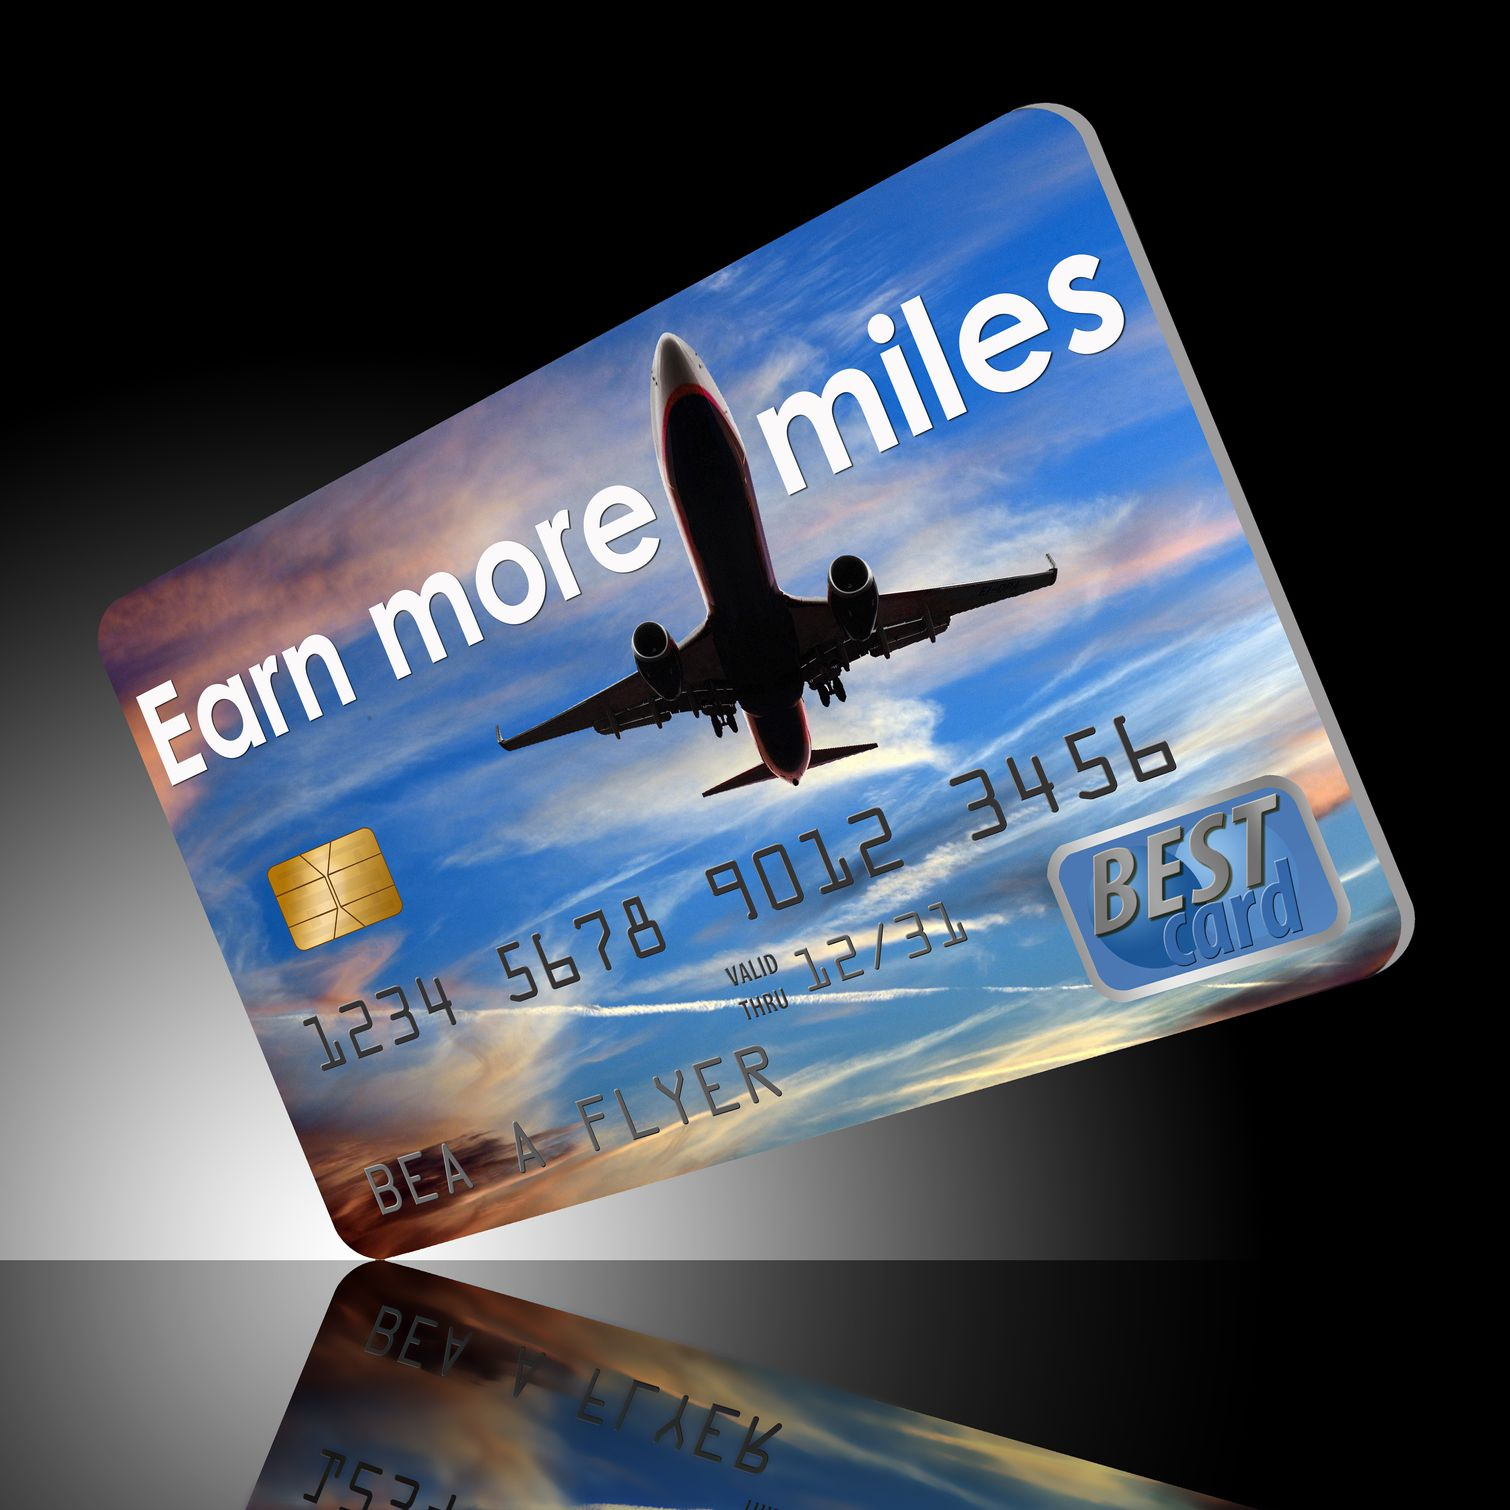 7 Top Ways to Earn Airline Miles